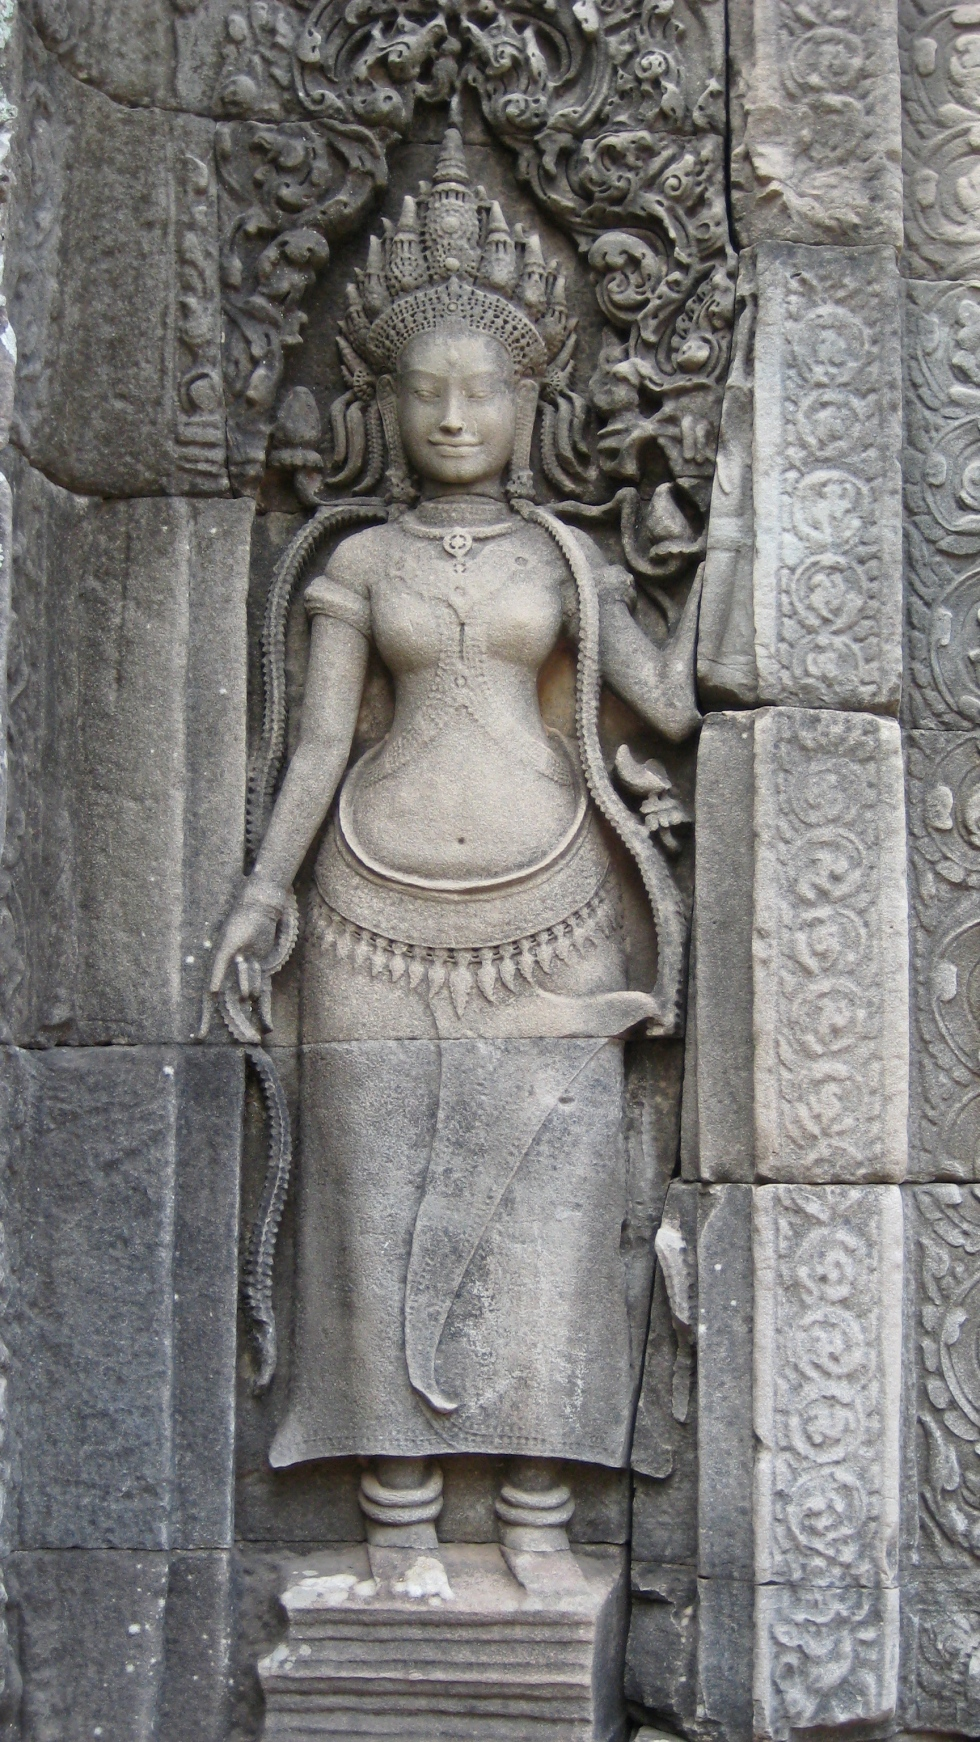 The feminine representation of spirituality Apsara